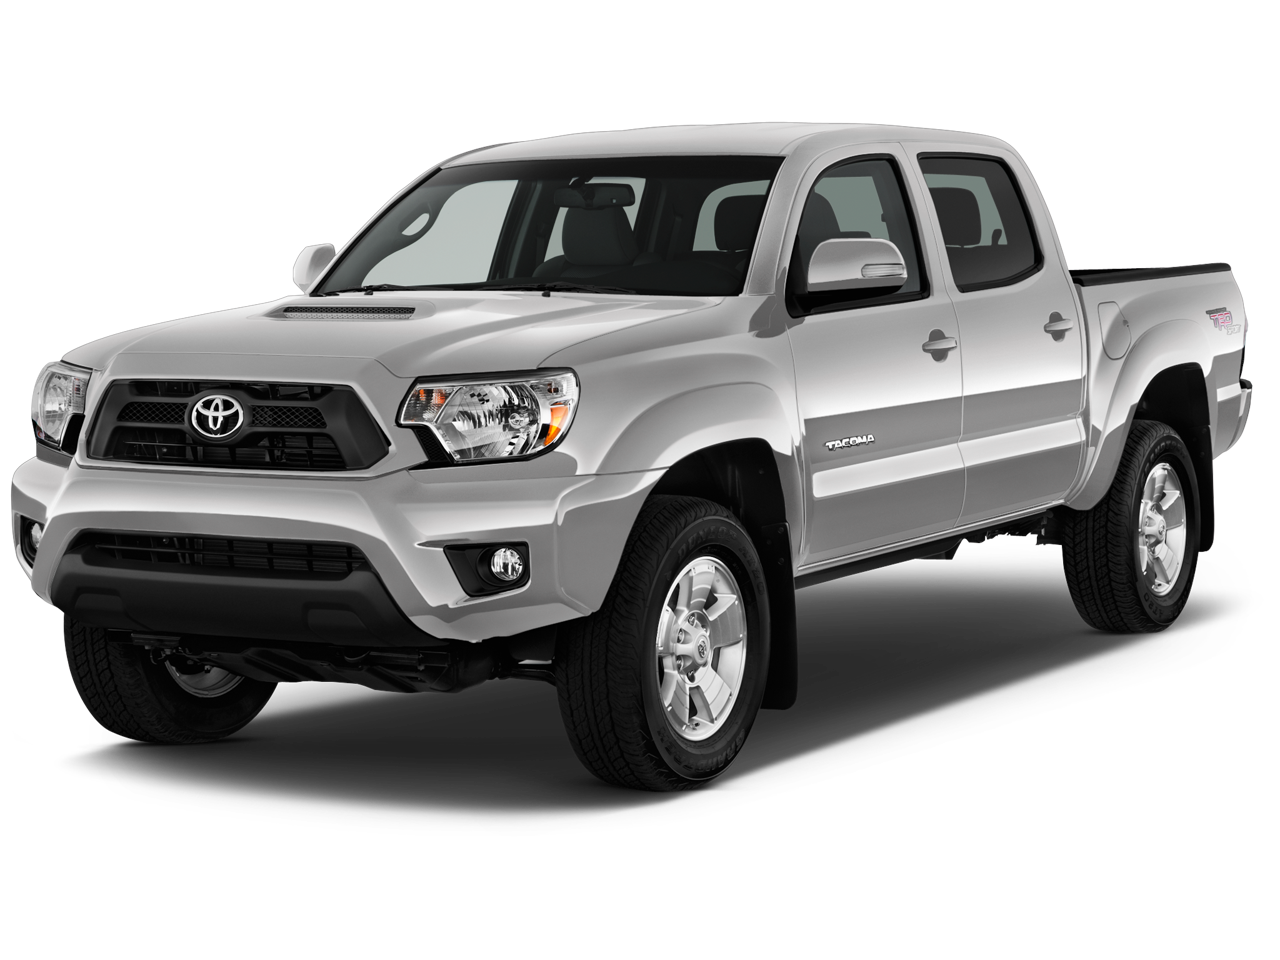 used one owner 2015 toyota tacoma v6 near milpitas ca. Black Bedroom Furniture Sets. Home Design Ideas